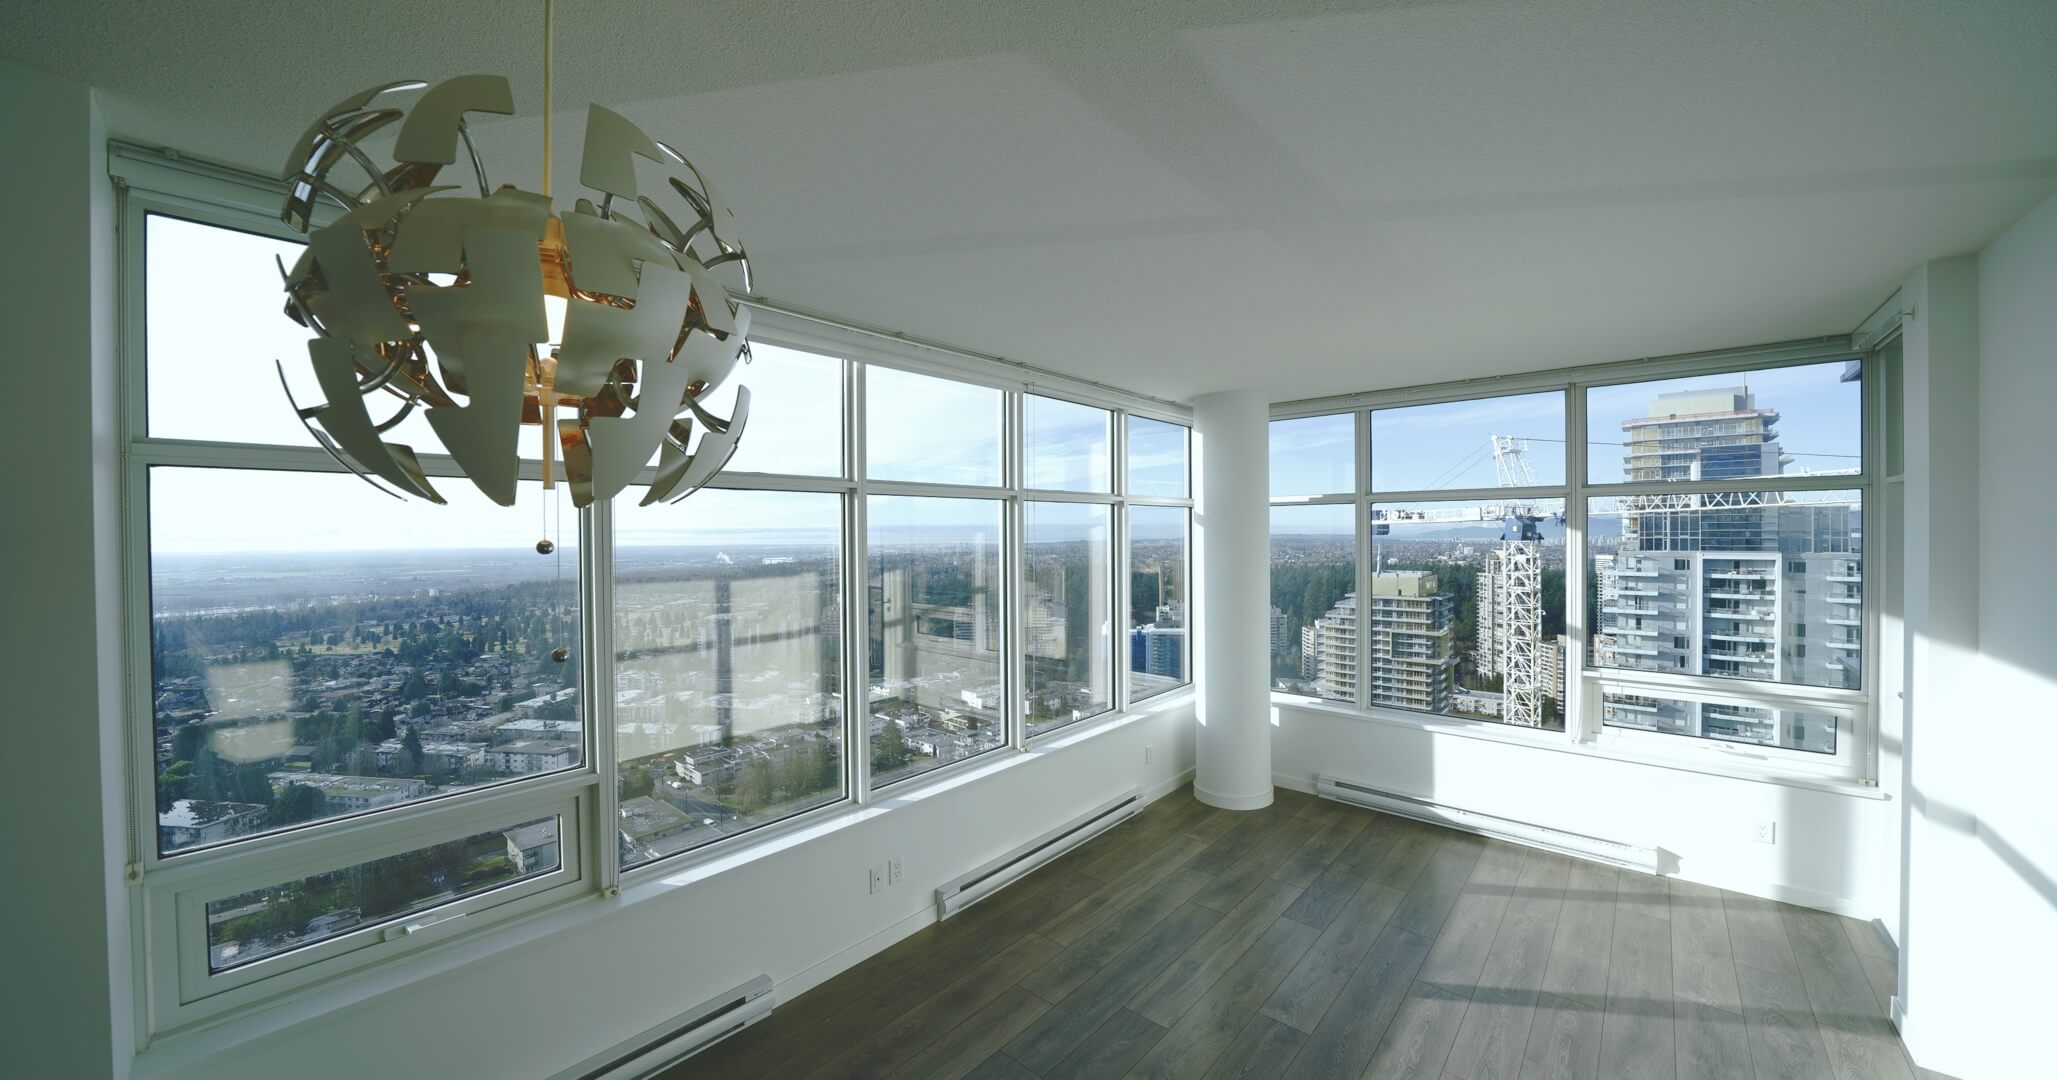 [NEW PRICE FOR RENT]#3907 6461 Telford Ave, Burnaby (Metroplace), 2Bedroom+2Bath (906Ft+Balcony)